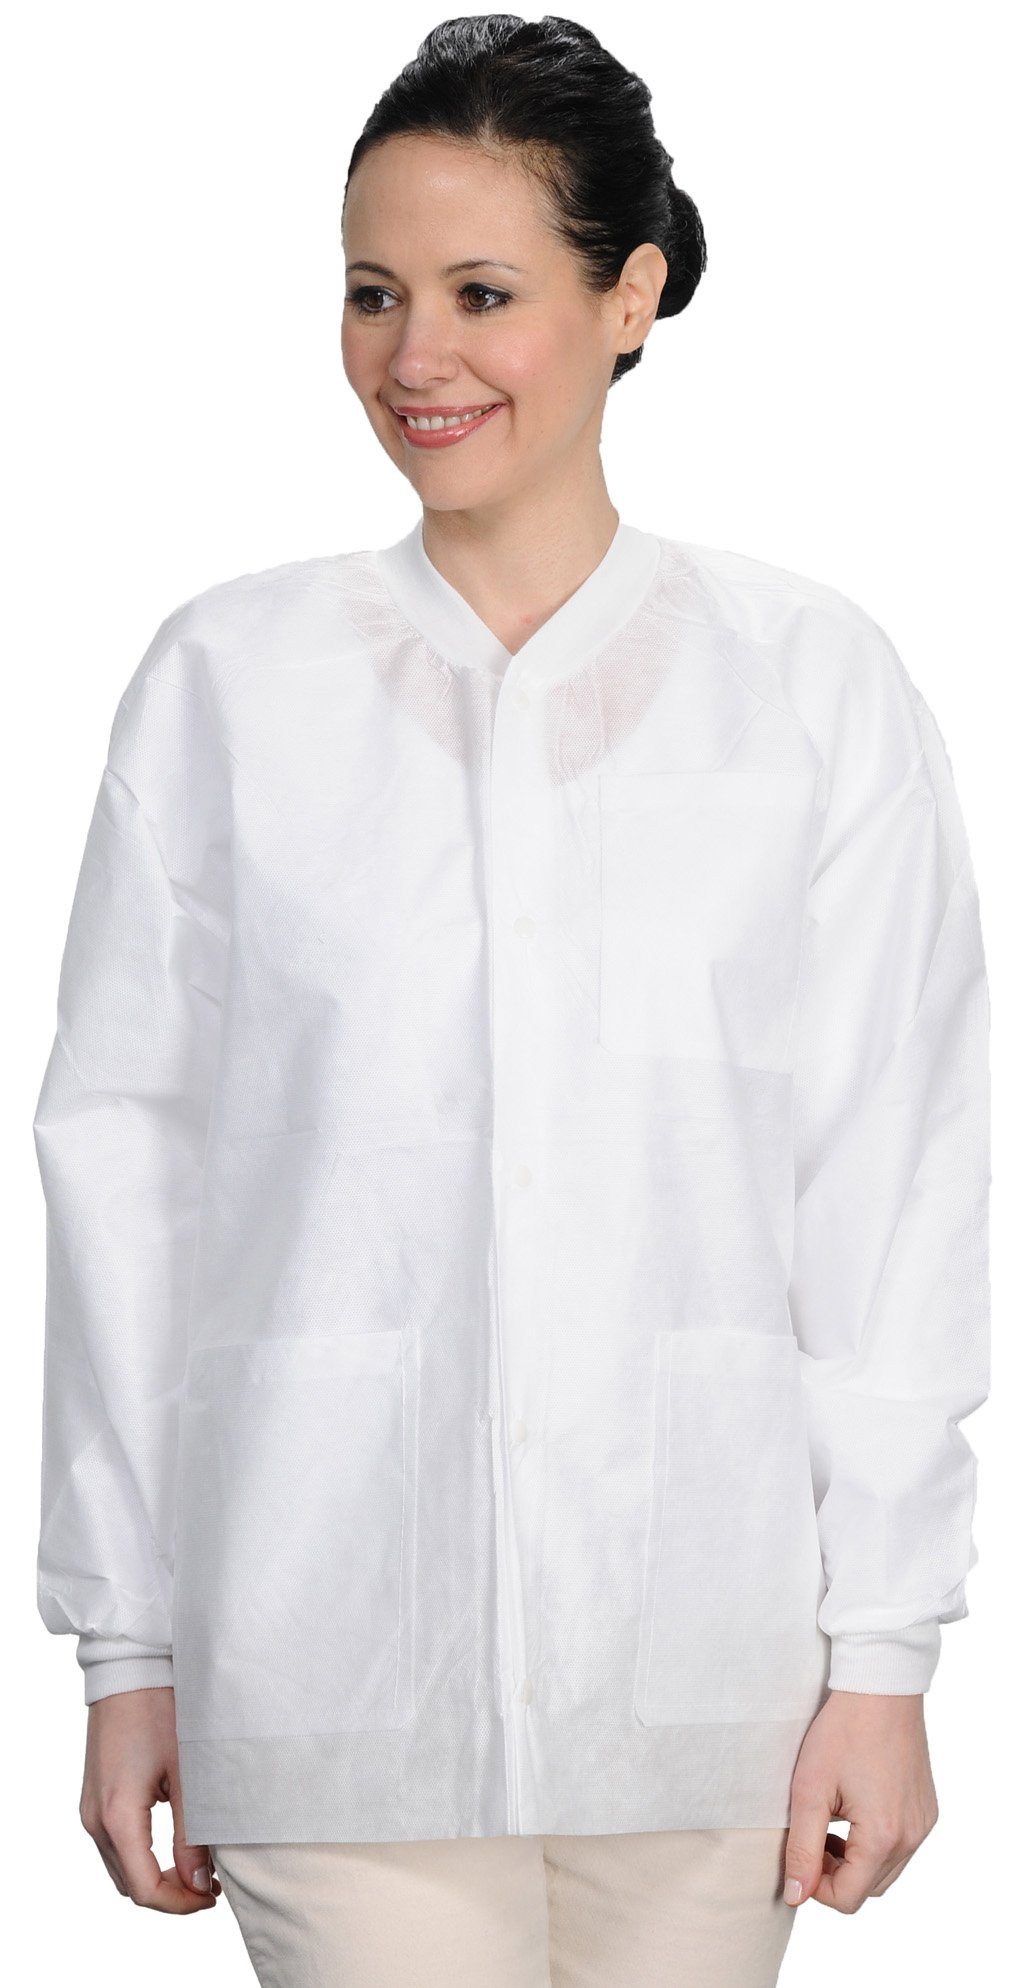 ValuMax 3530WHXL Easy Breathe Cool and Strong, No-Wrinkle, Professional Disposable SMS Hip Length Jacket, White, XL, Pack of 10